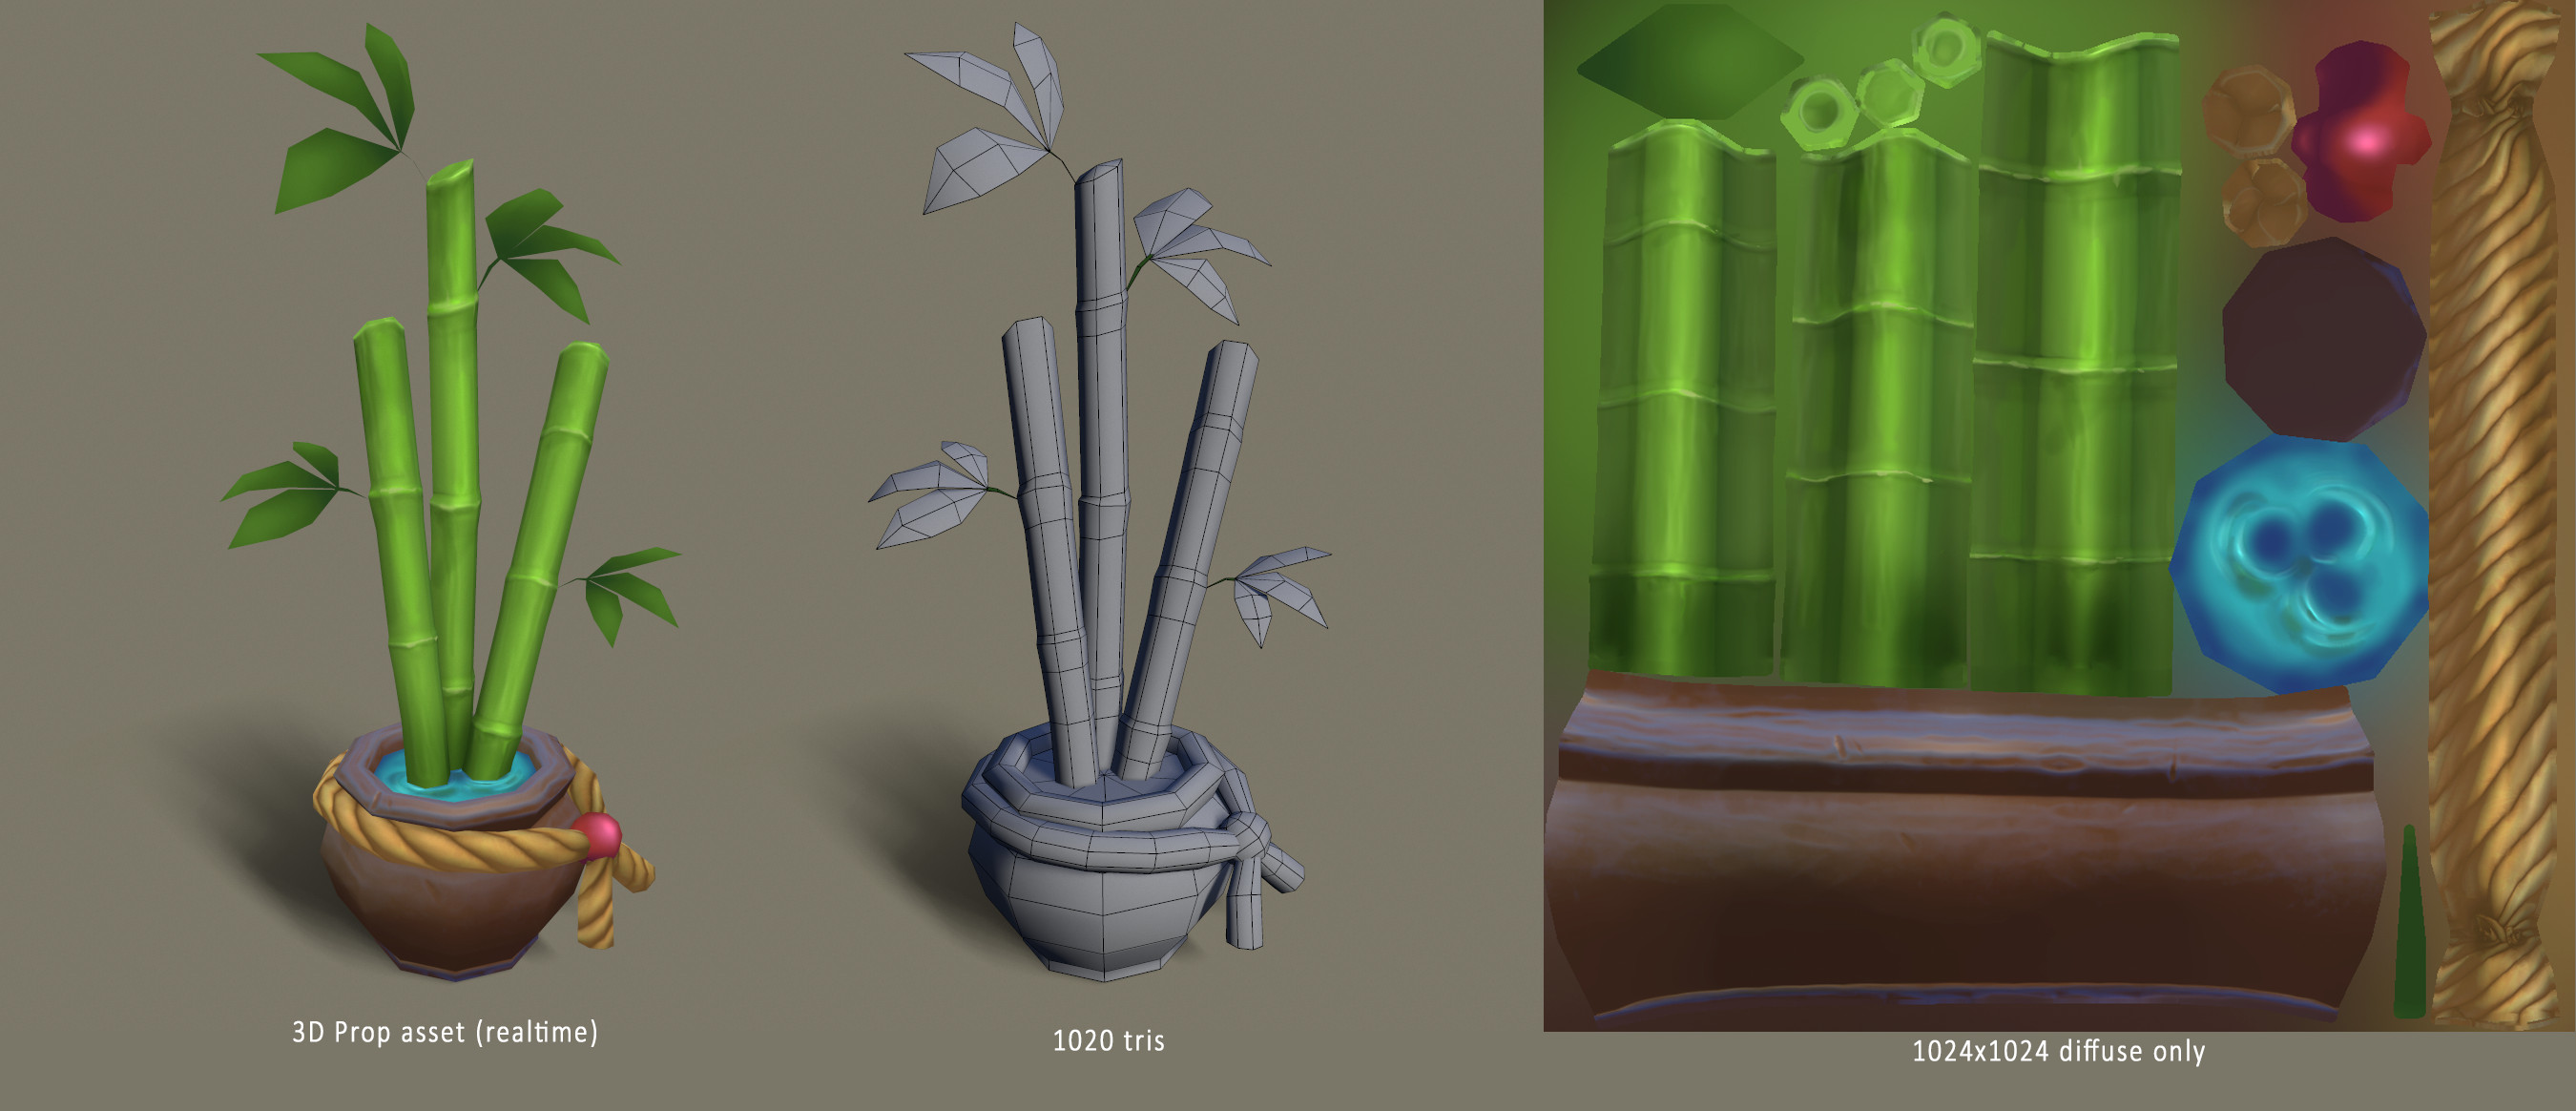 prop model based off environment